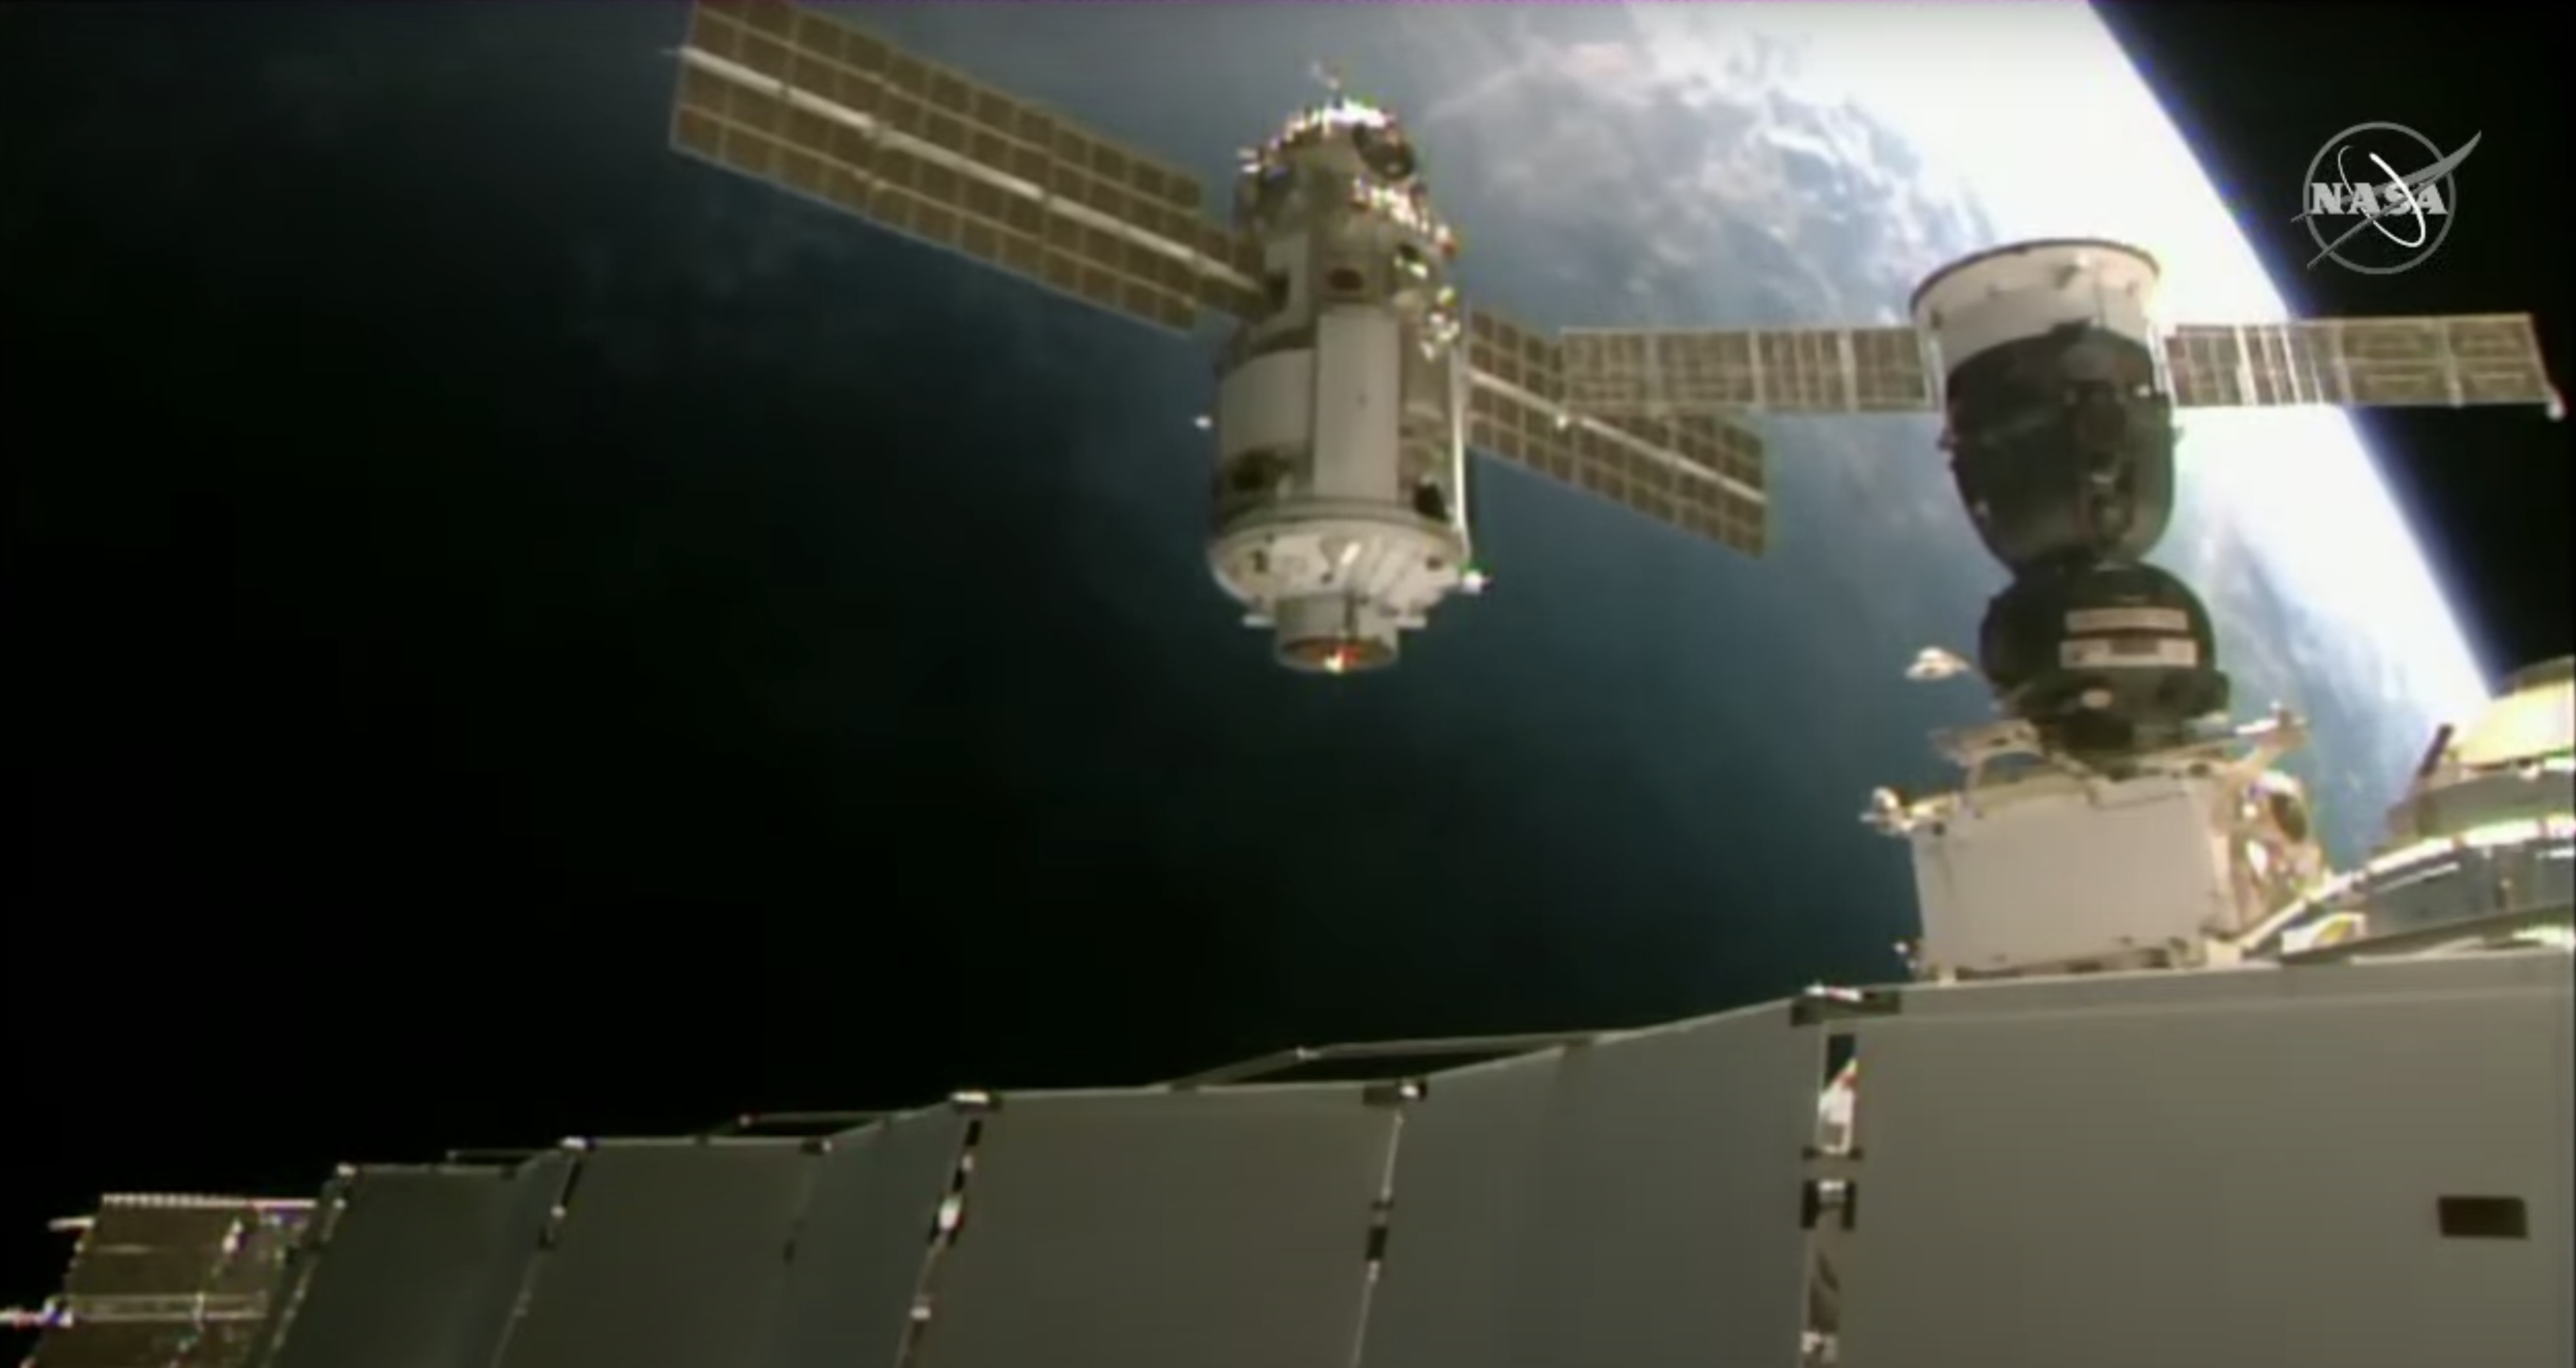 new module with solar panels flies near space station with Earth in background